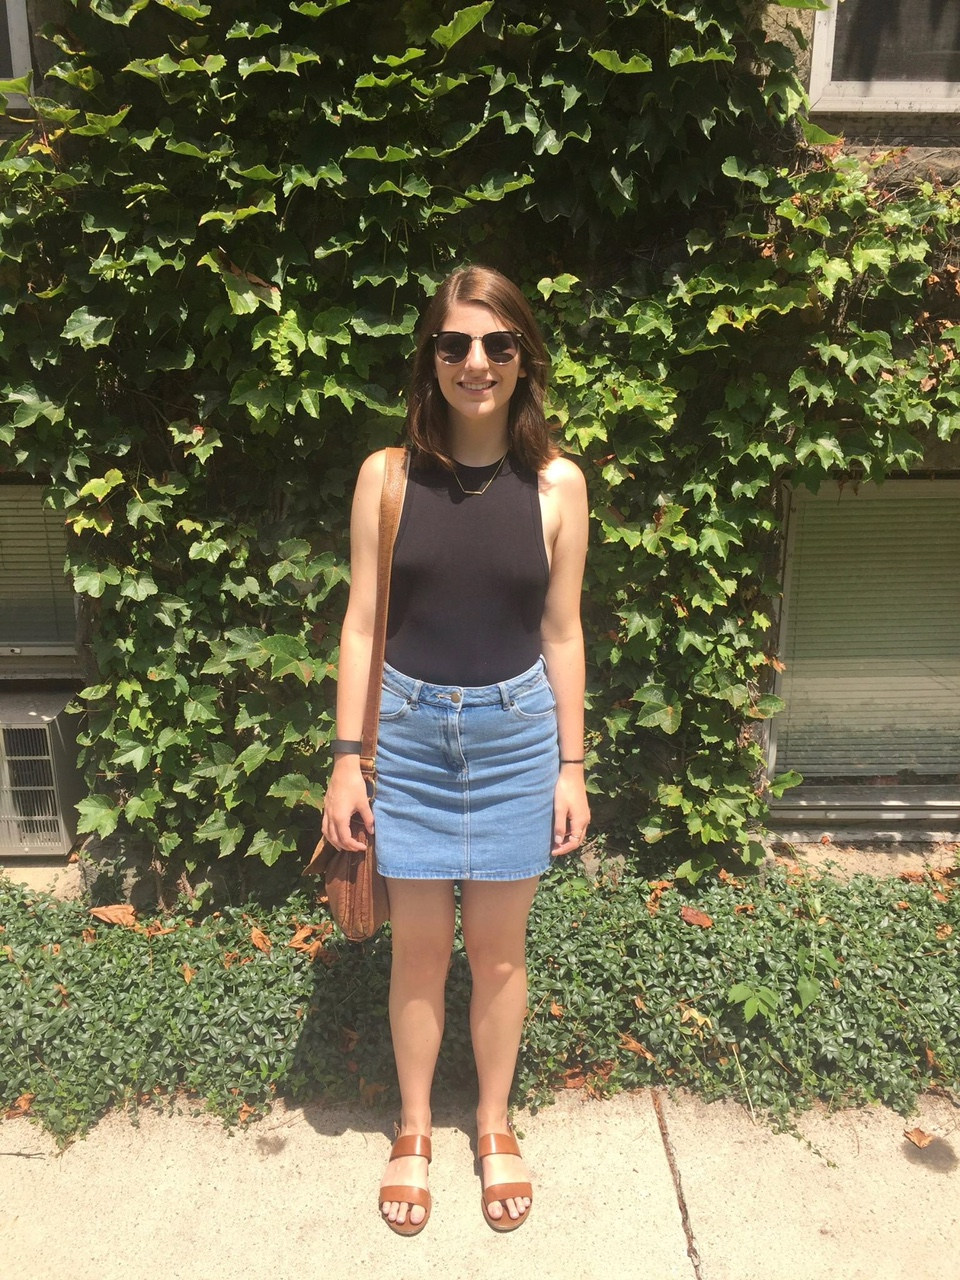 Brooke Taylor chose the 3-day Intermediate Cleanse